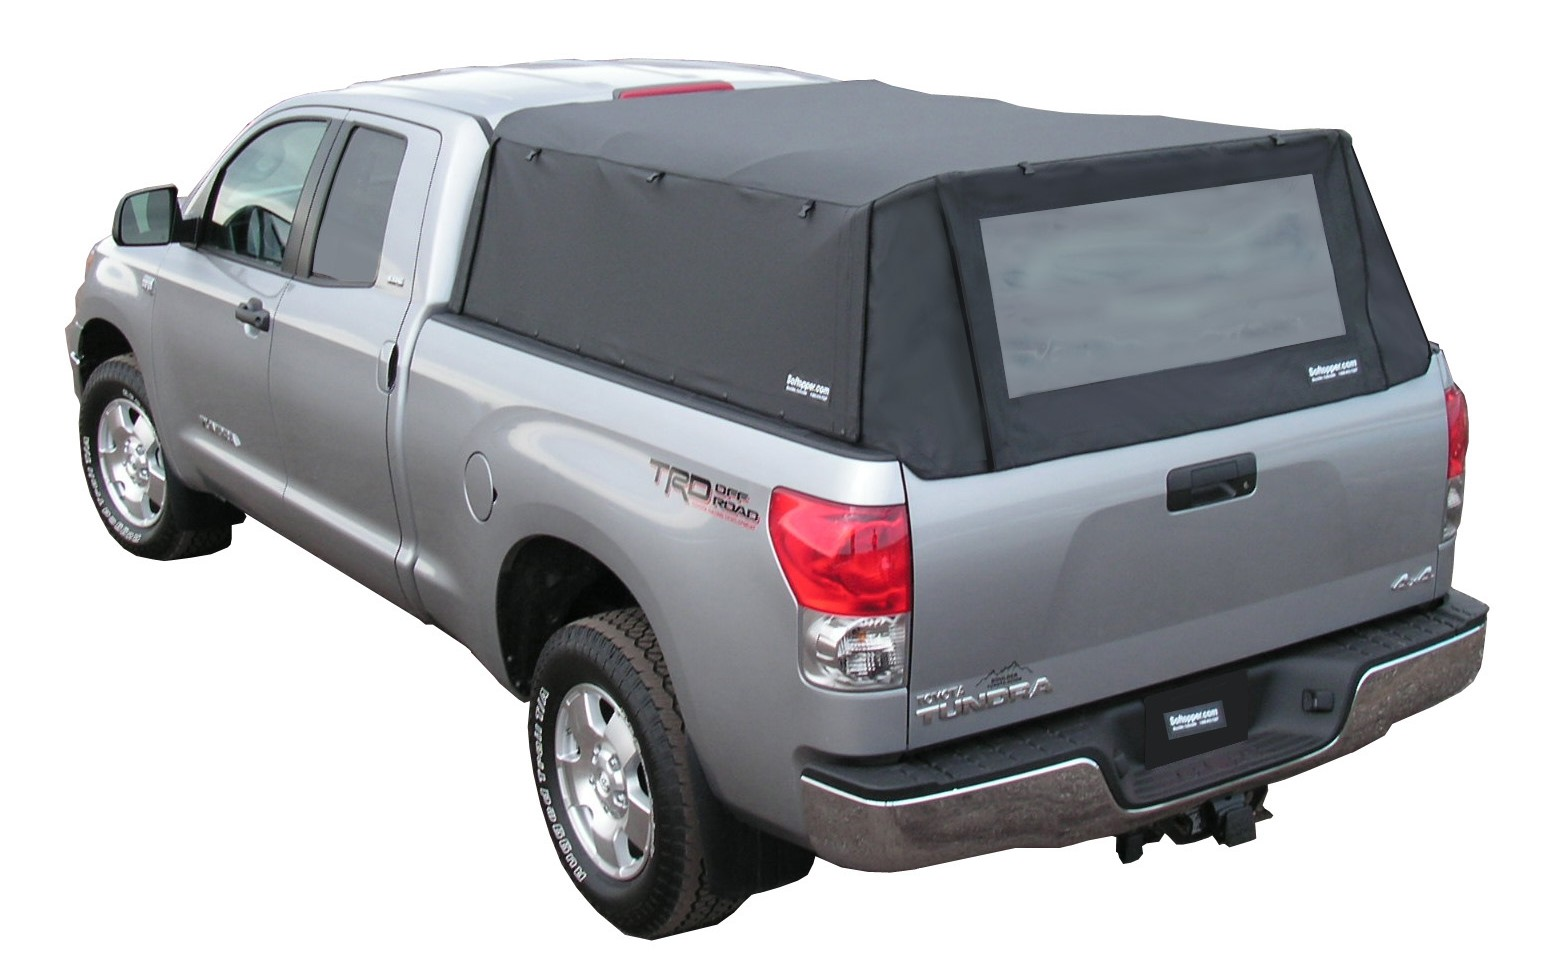 Toyota Tacoma Cargo Net Softopper Collapsible Truck Cover | Soft Top Canvas Truck Camper Shell ...